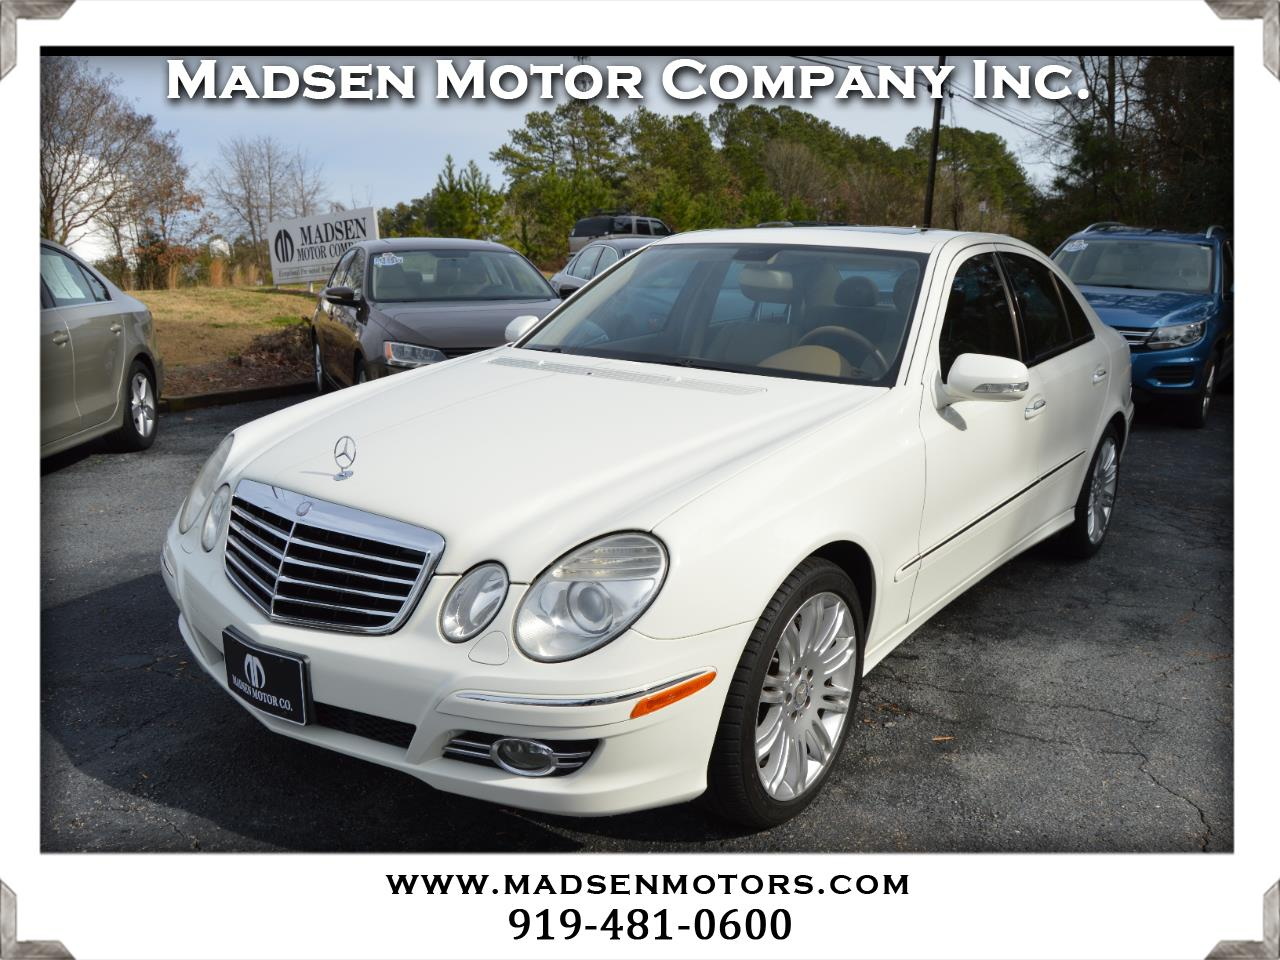 2008 Mercedes-Benz E-Class E350 Sport 4MATIC Sedan